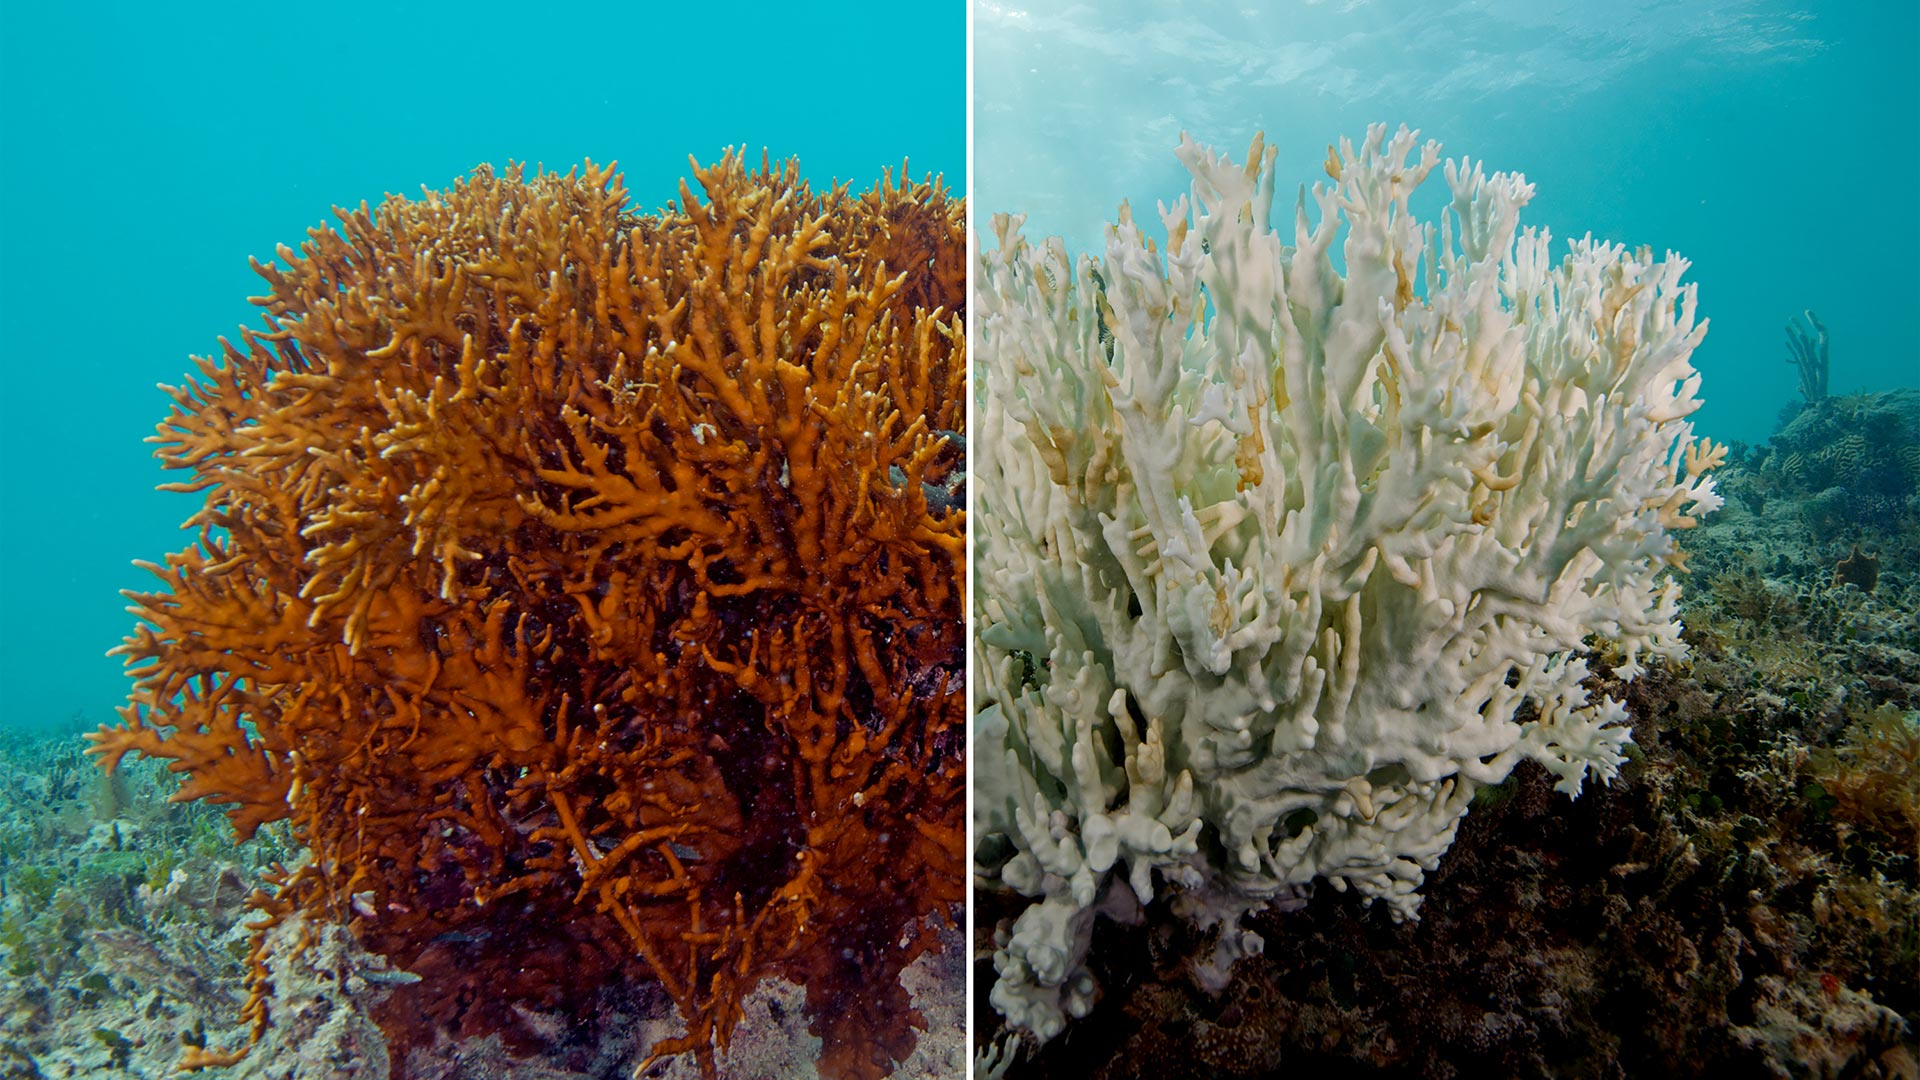 Effects of Oxybenzone on coral bleaching